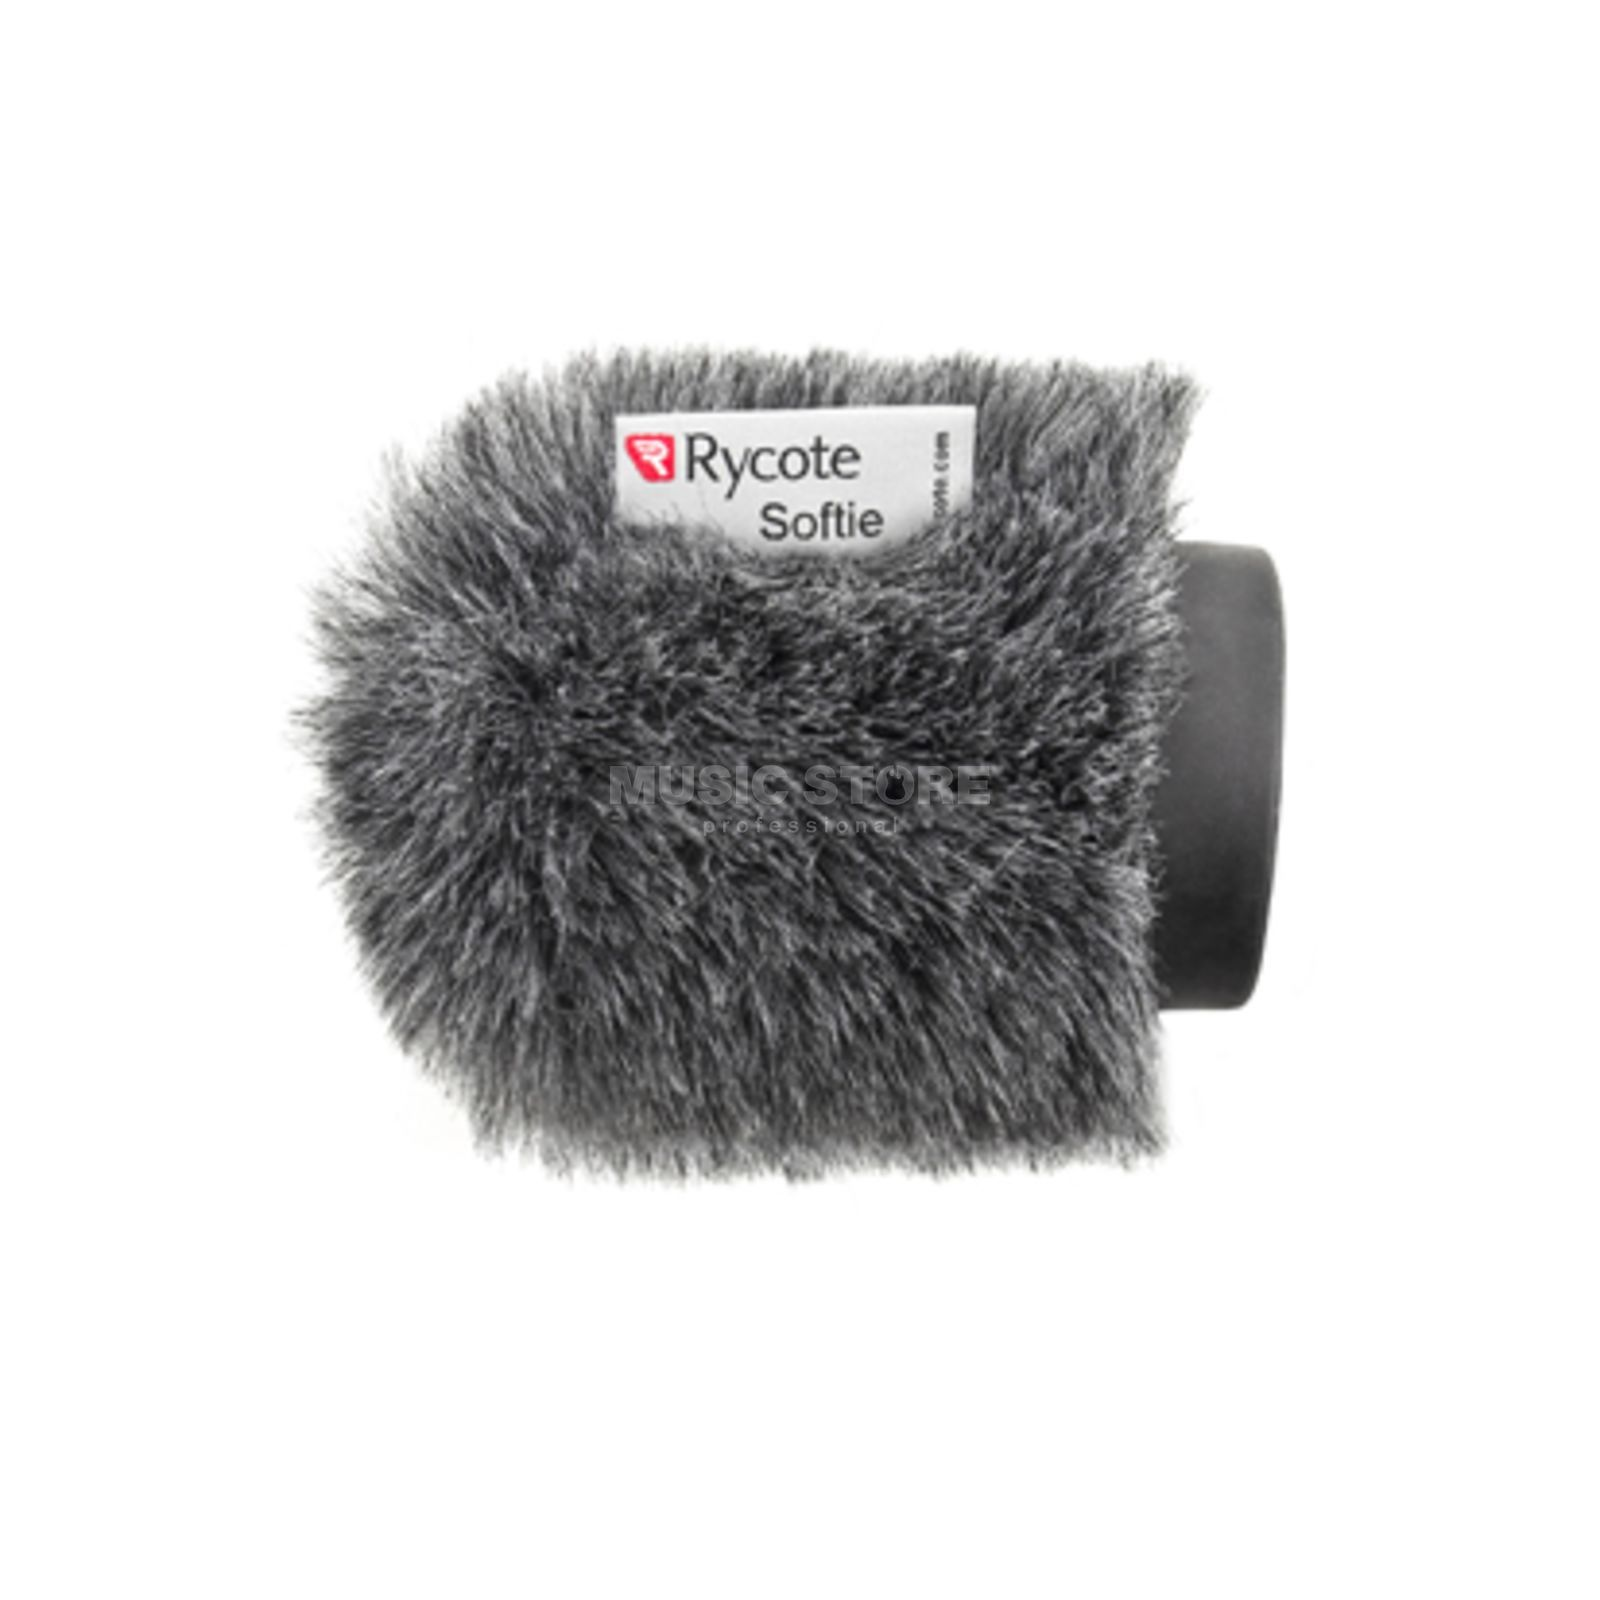 Rycote Classic Softie Windshield 5cm Standard Hole Εικόνα προιόντος